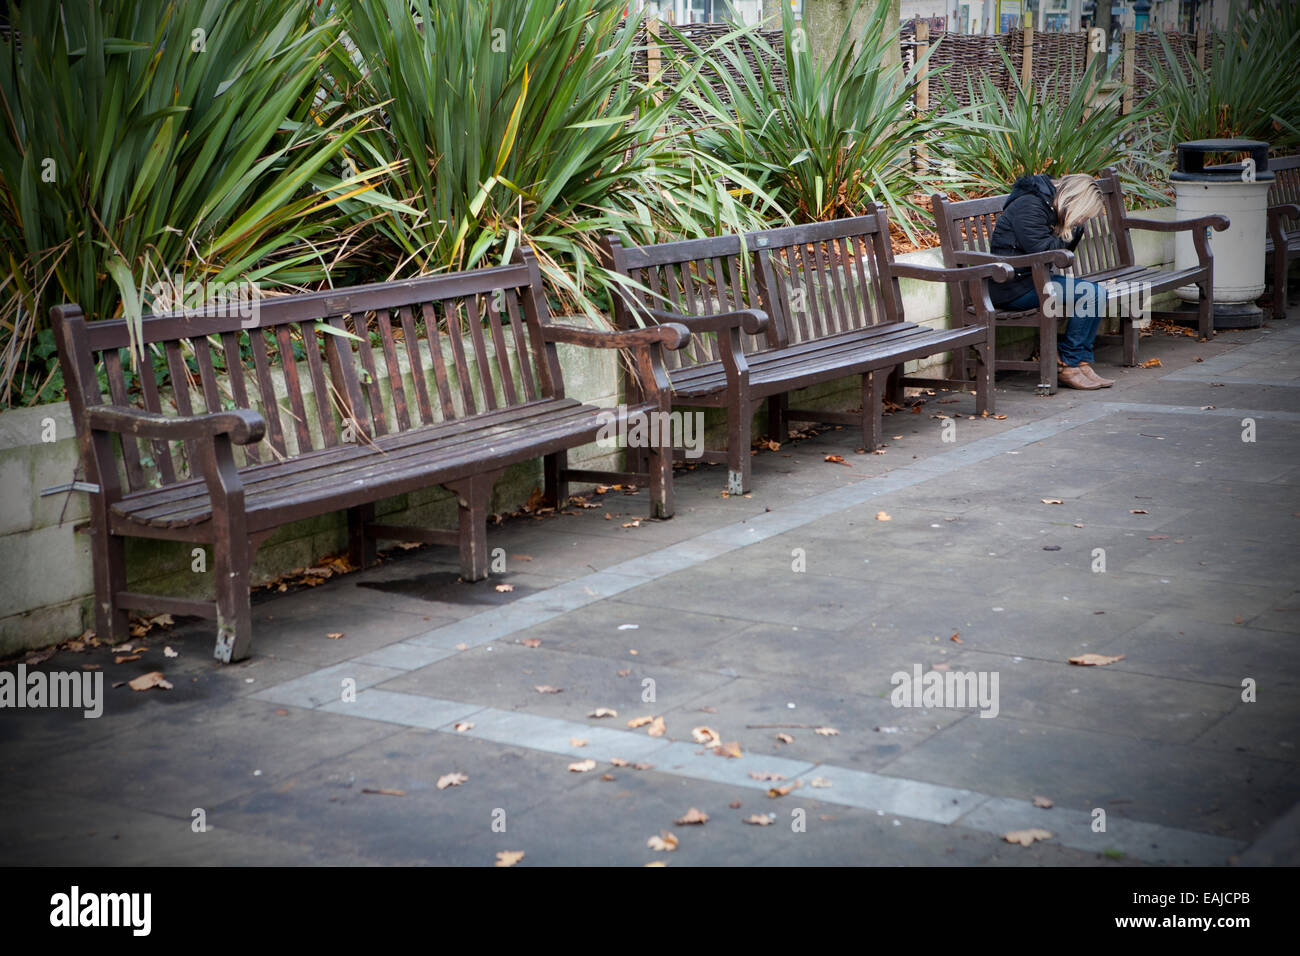 Solitary adult woman sitting alone with head in hands sitting on bench by herself, Southport, Merseyside,UK - Stock Image